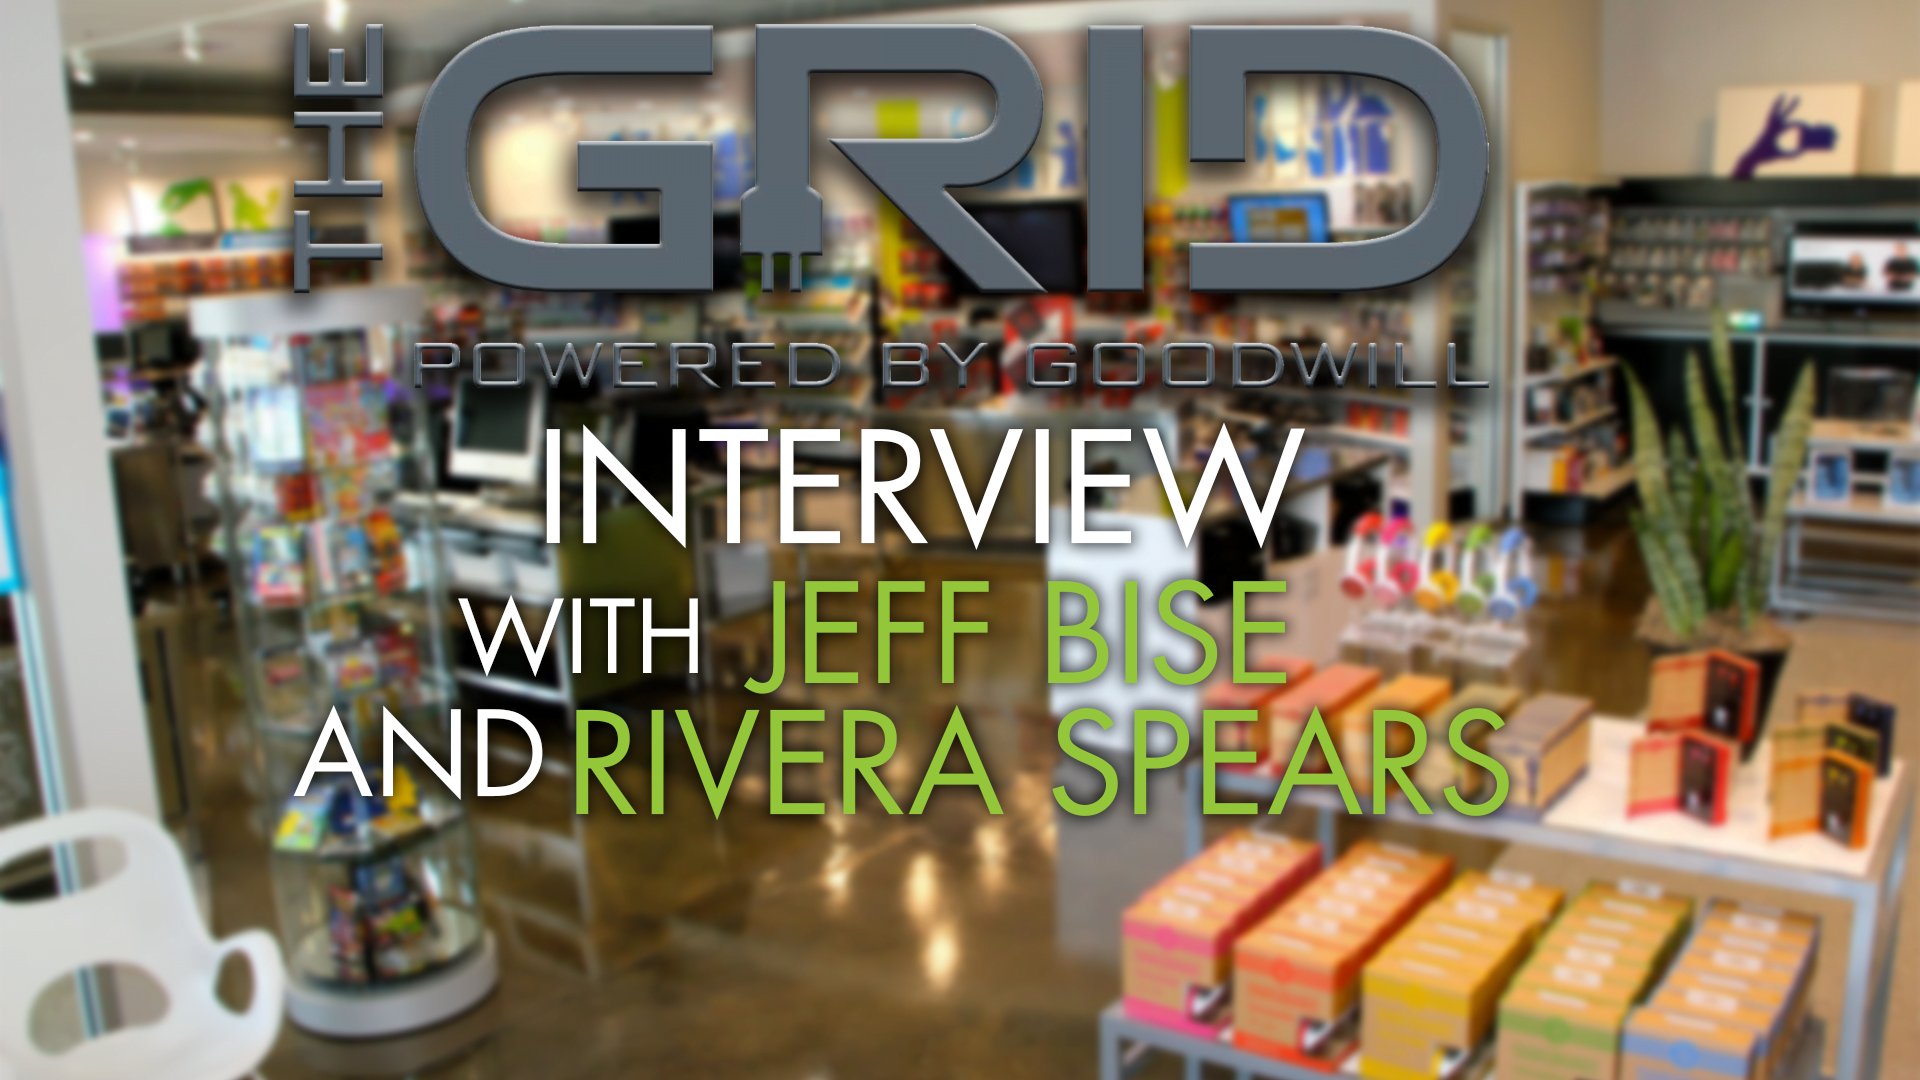 Photo of The GRID: Powered by Goodwill Interview with Jeff Bise and Rivera Spears